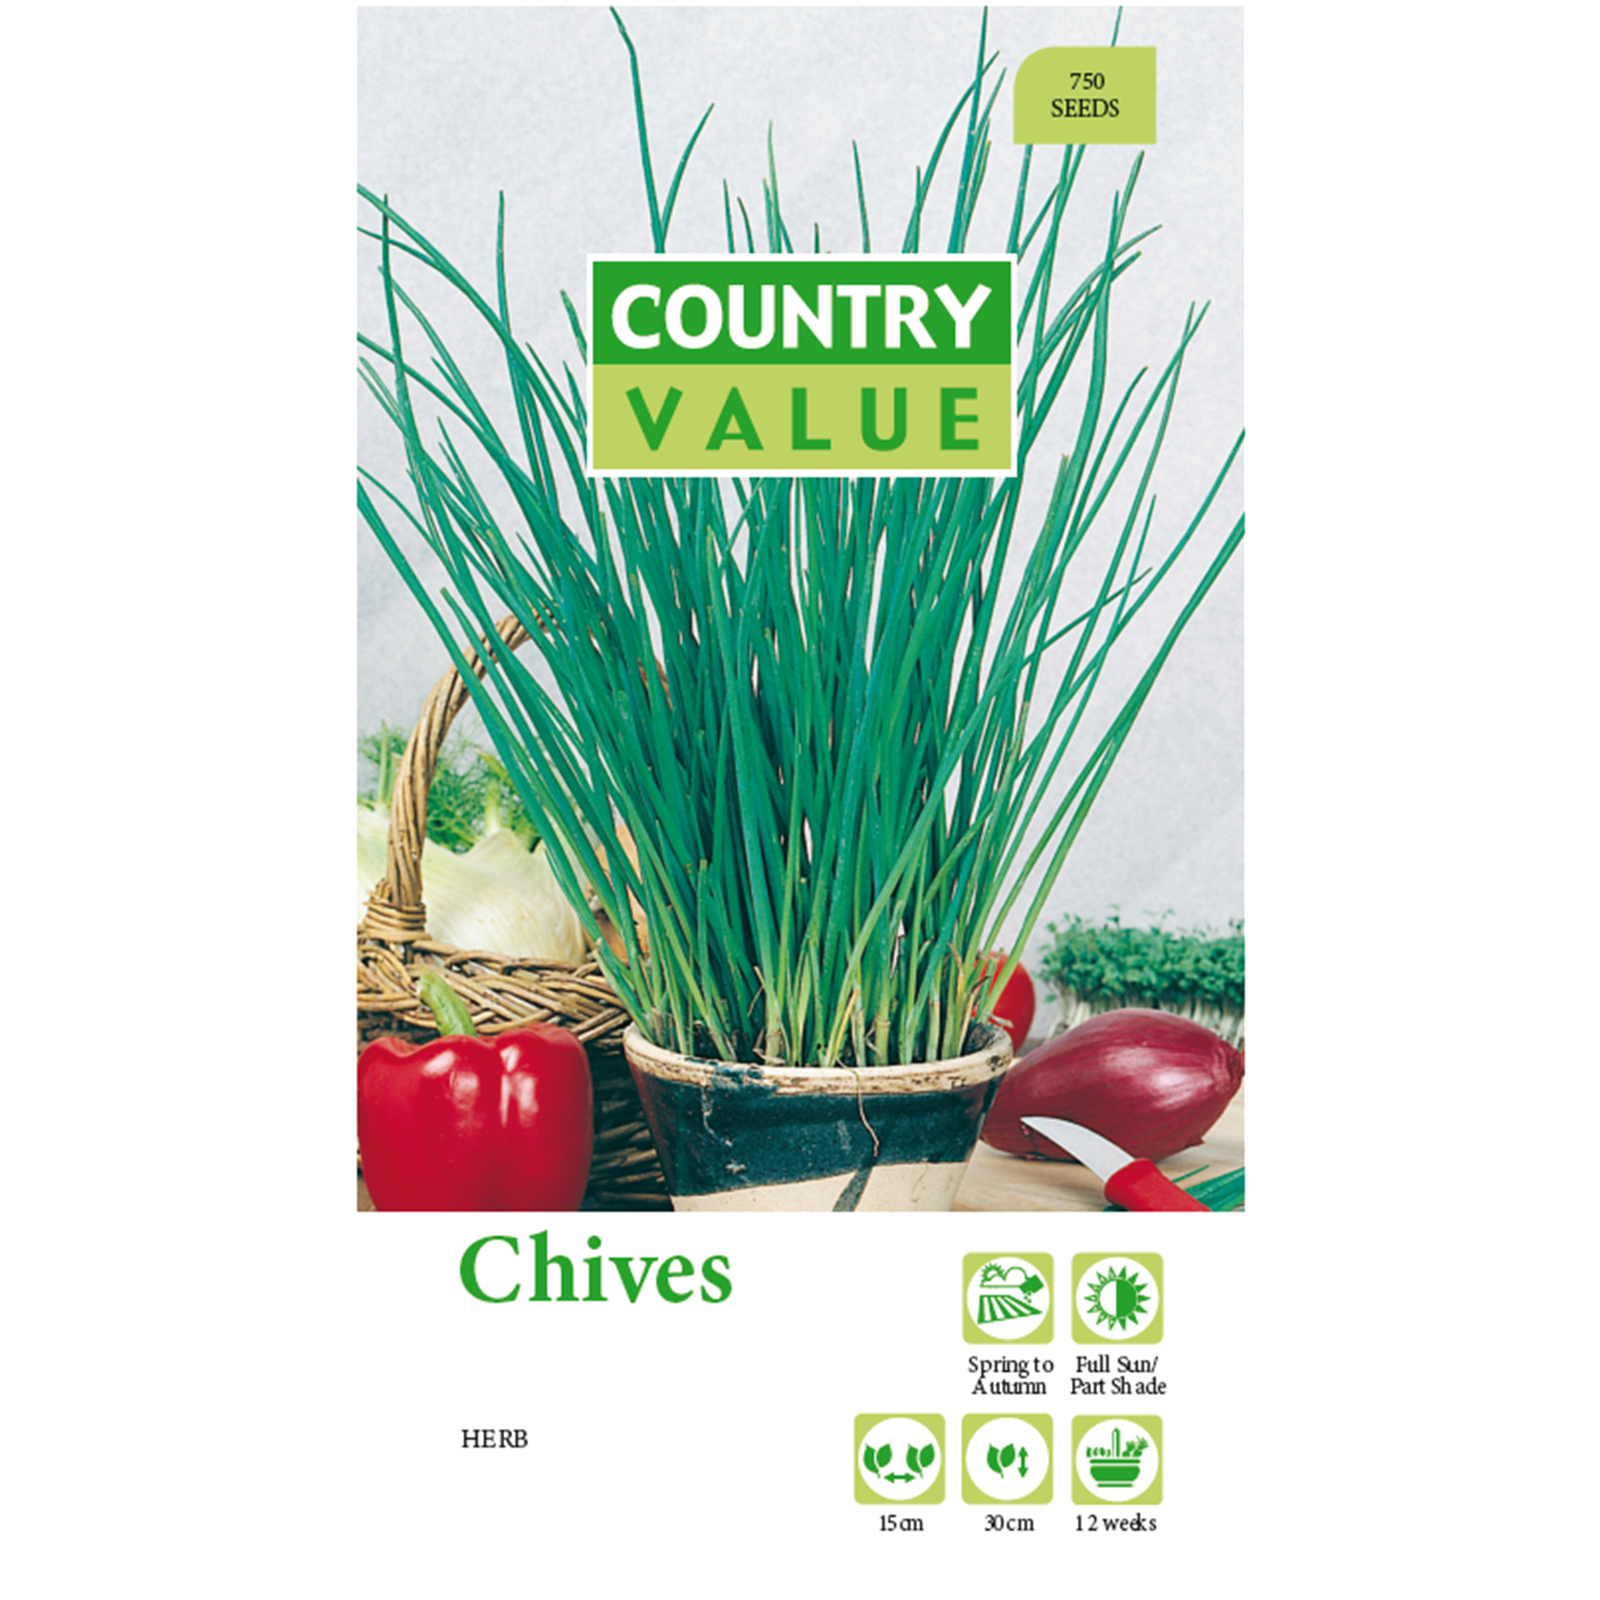 Country Value Chives Seeds (With images) Chive seeds